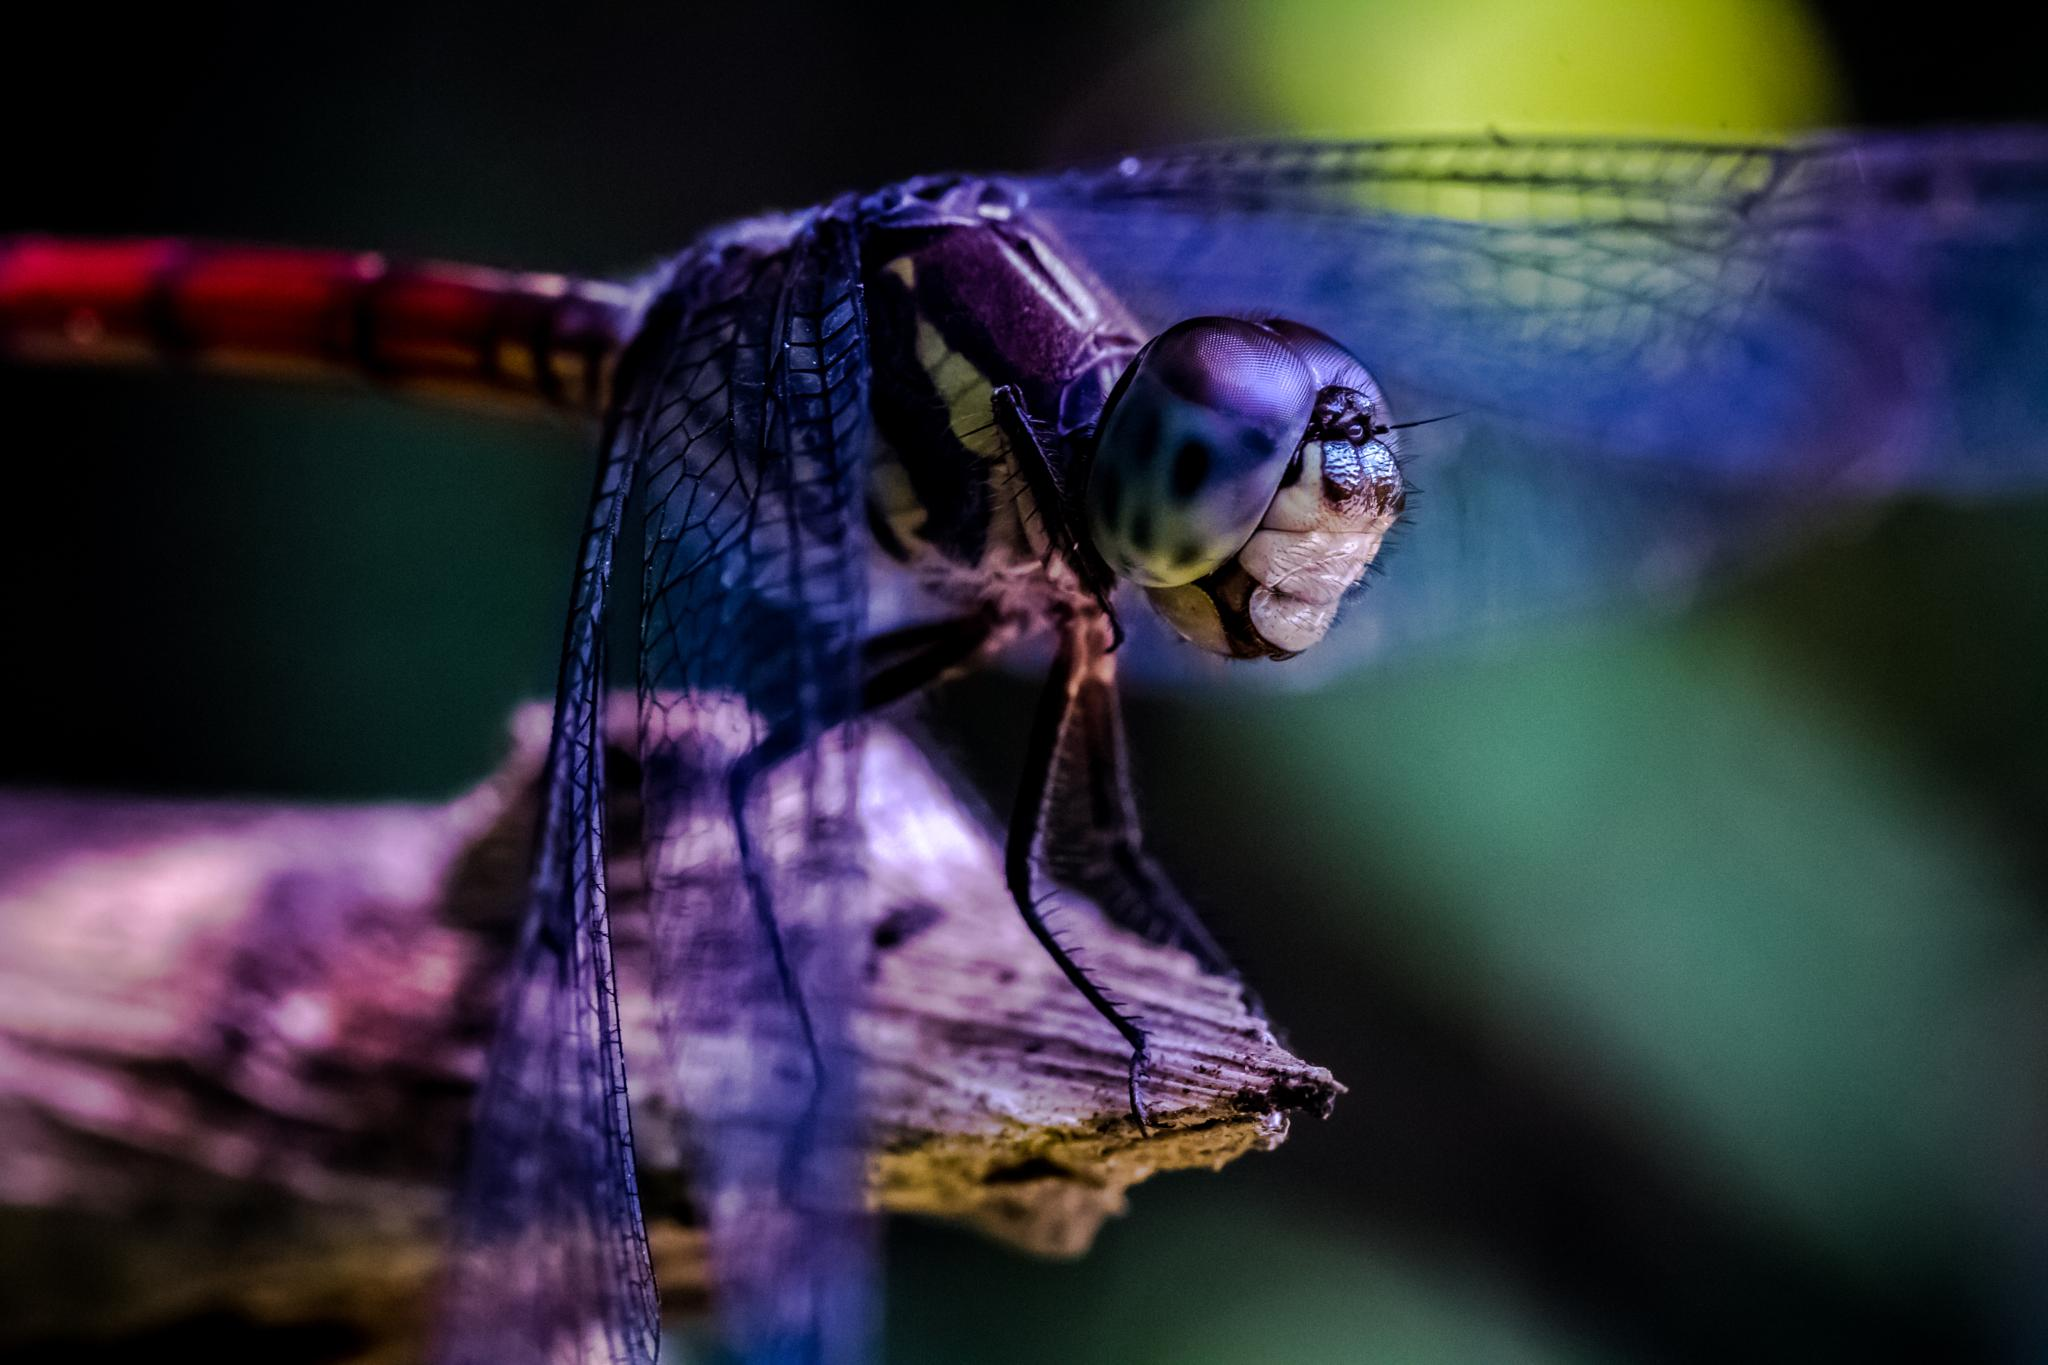 Portrait of a dragonfly by Thomas Ho